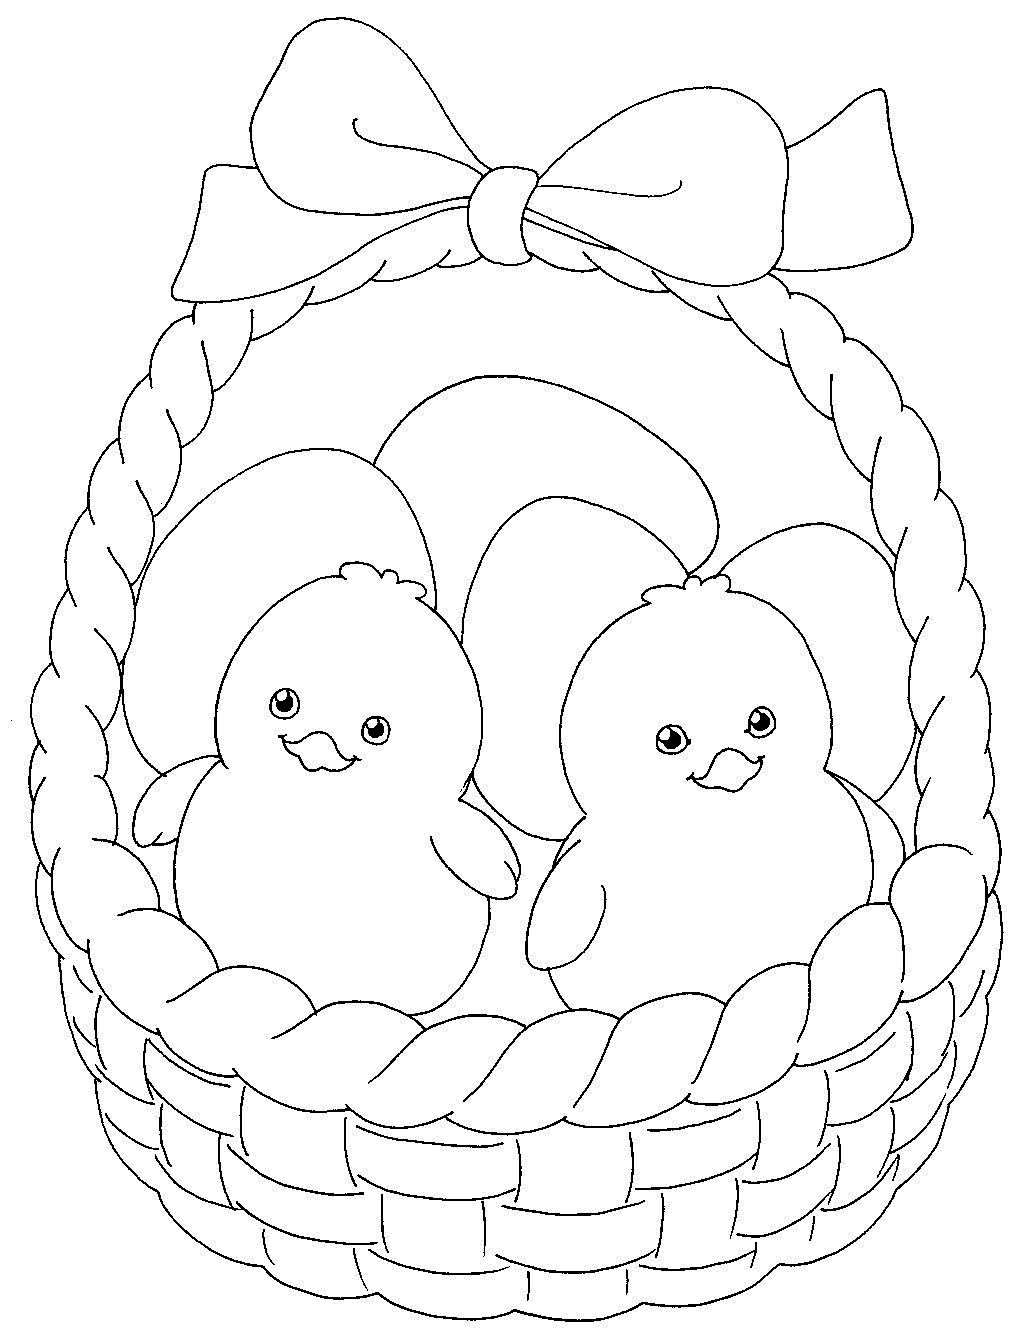 Easter basket coloring pages printable ~ Easter Basket Coloring Pages - Best Coloring Pages For Kids